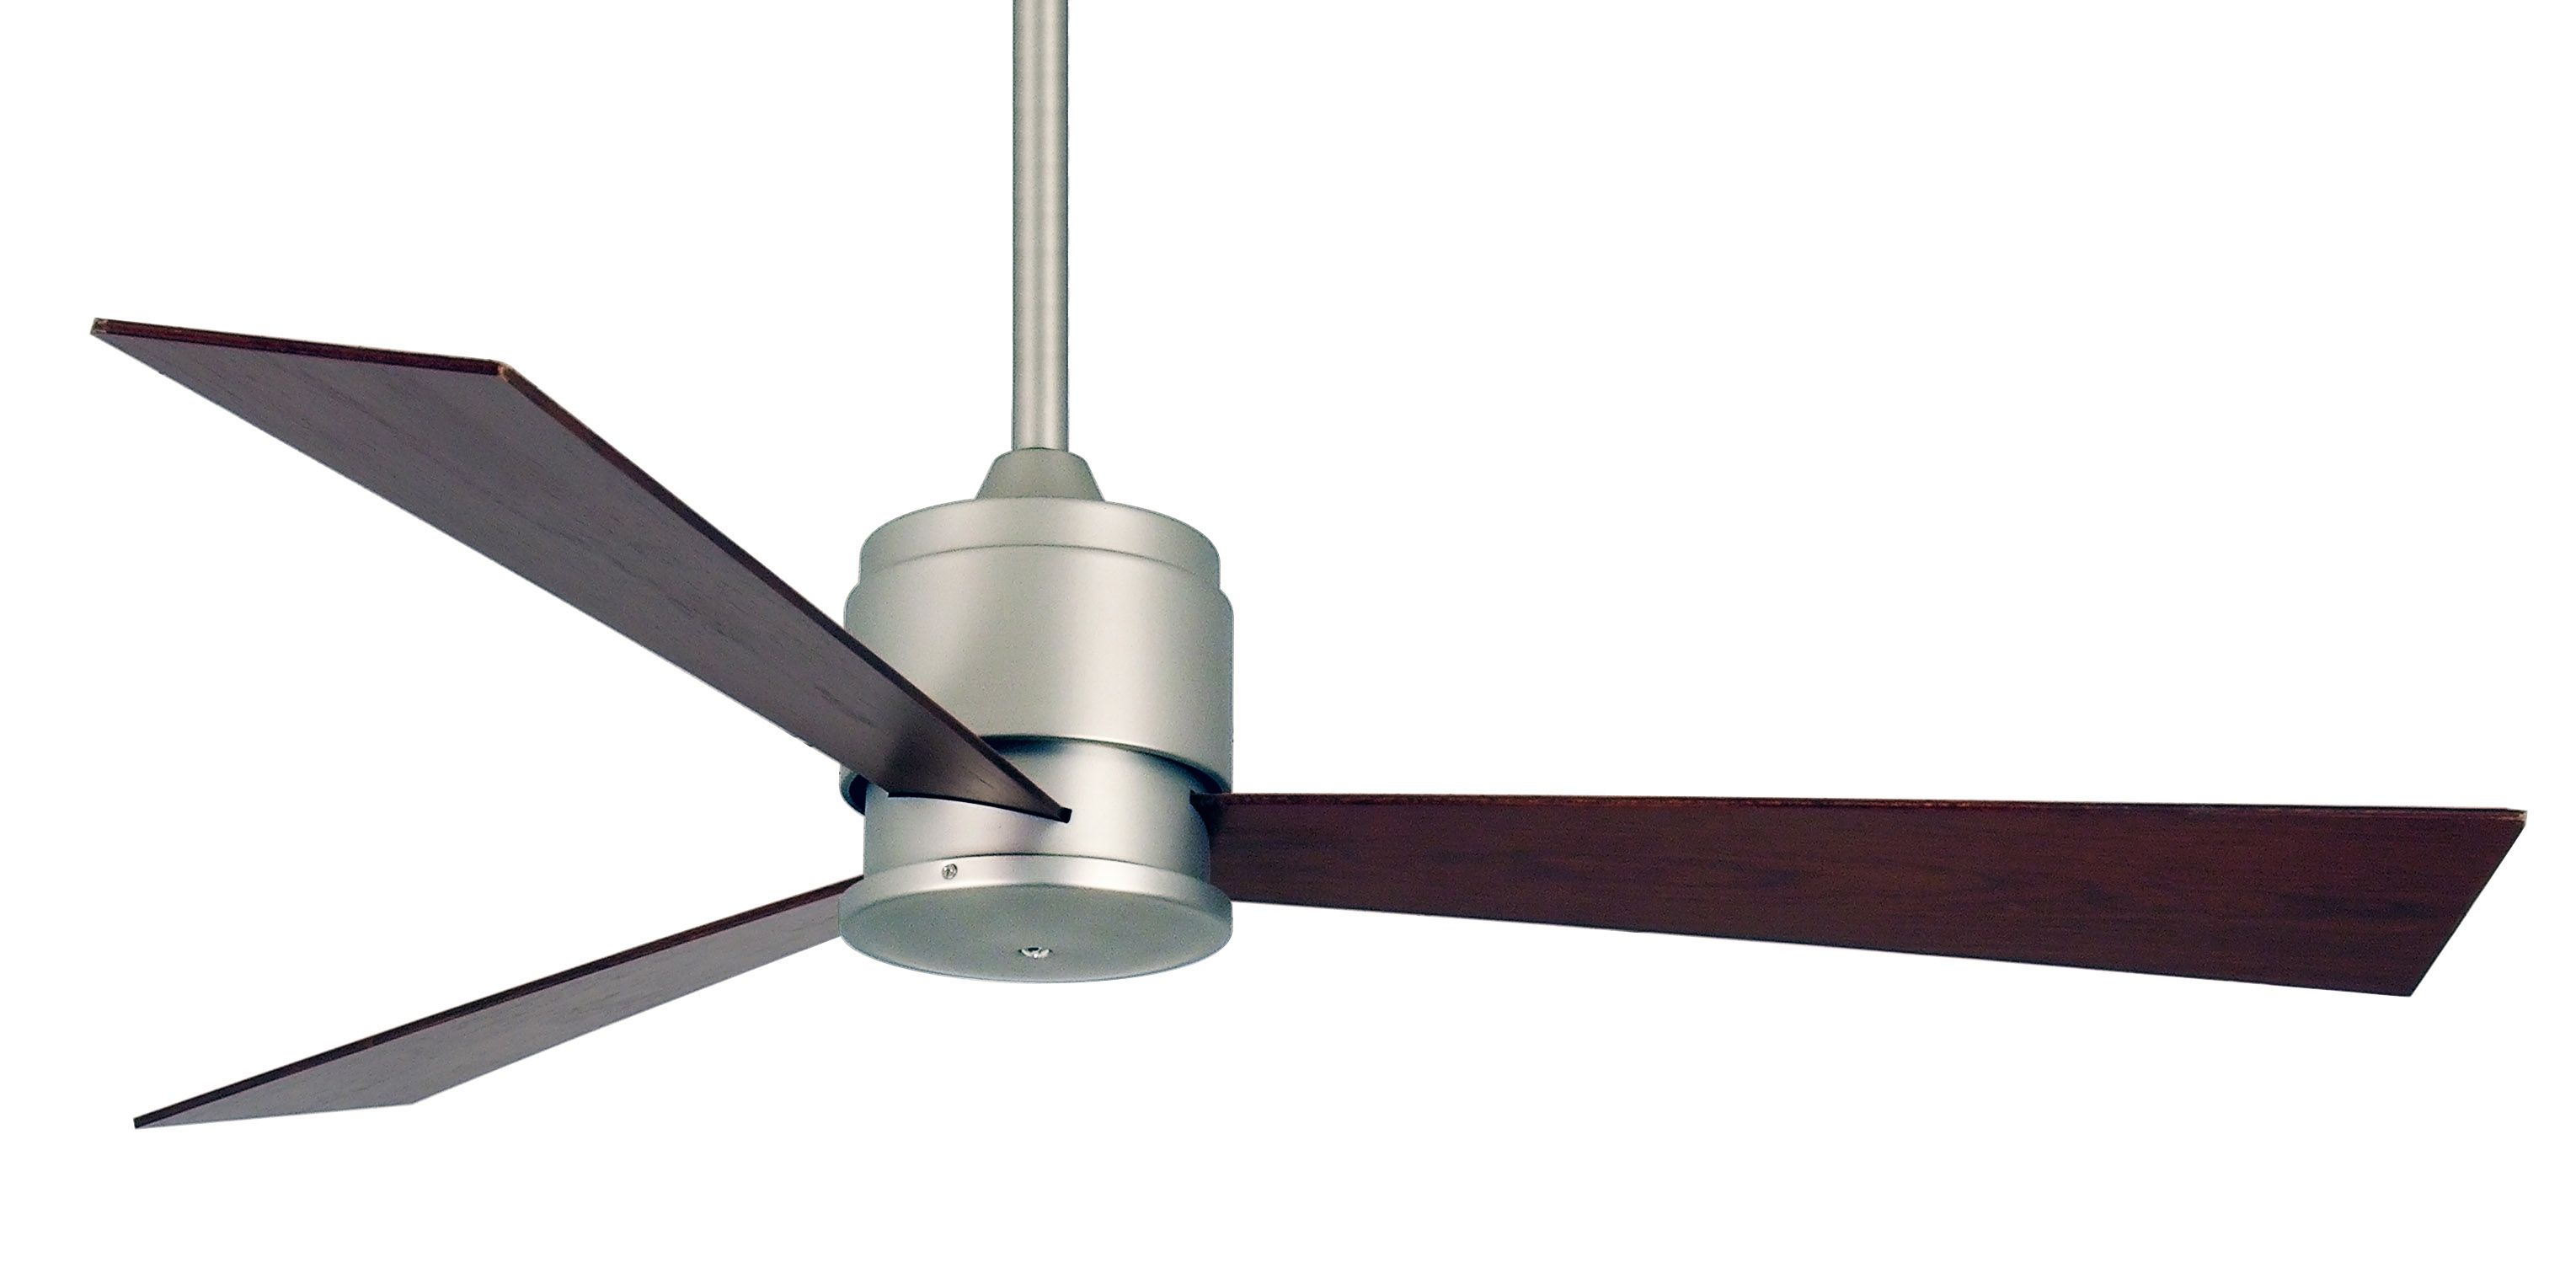 Ceiling Fan Zonix 137cm 54 Quot Nickel With Wall Control